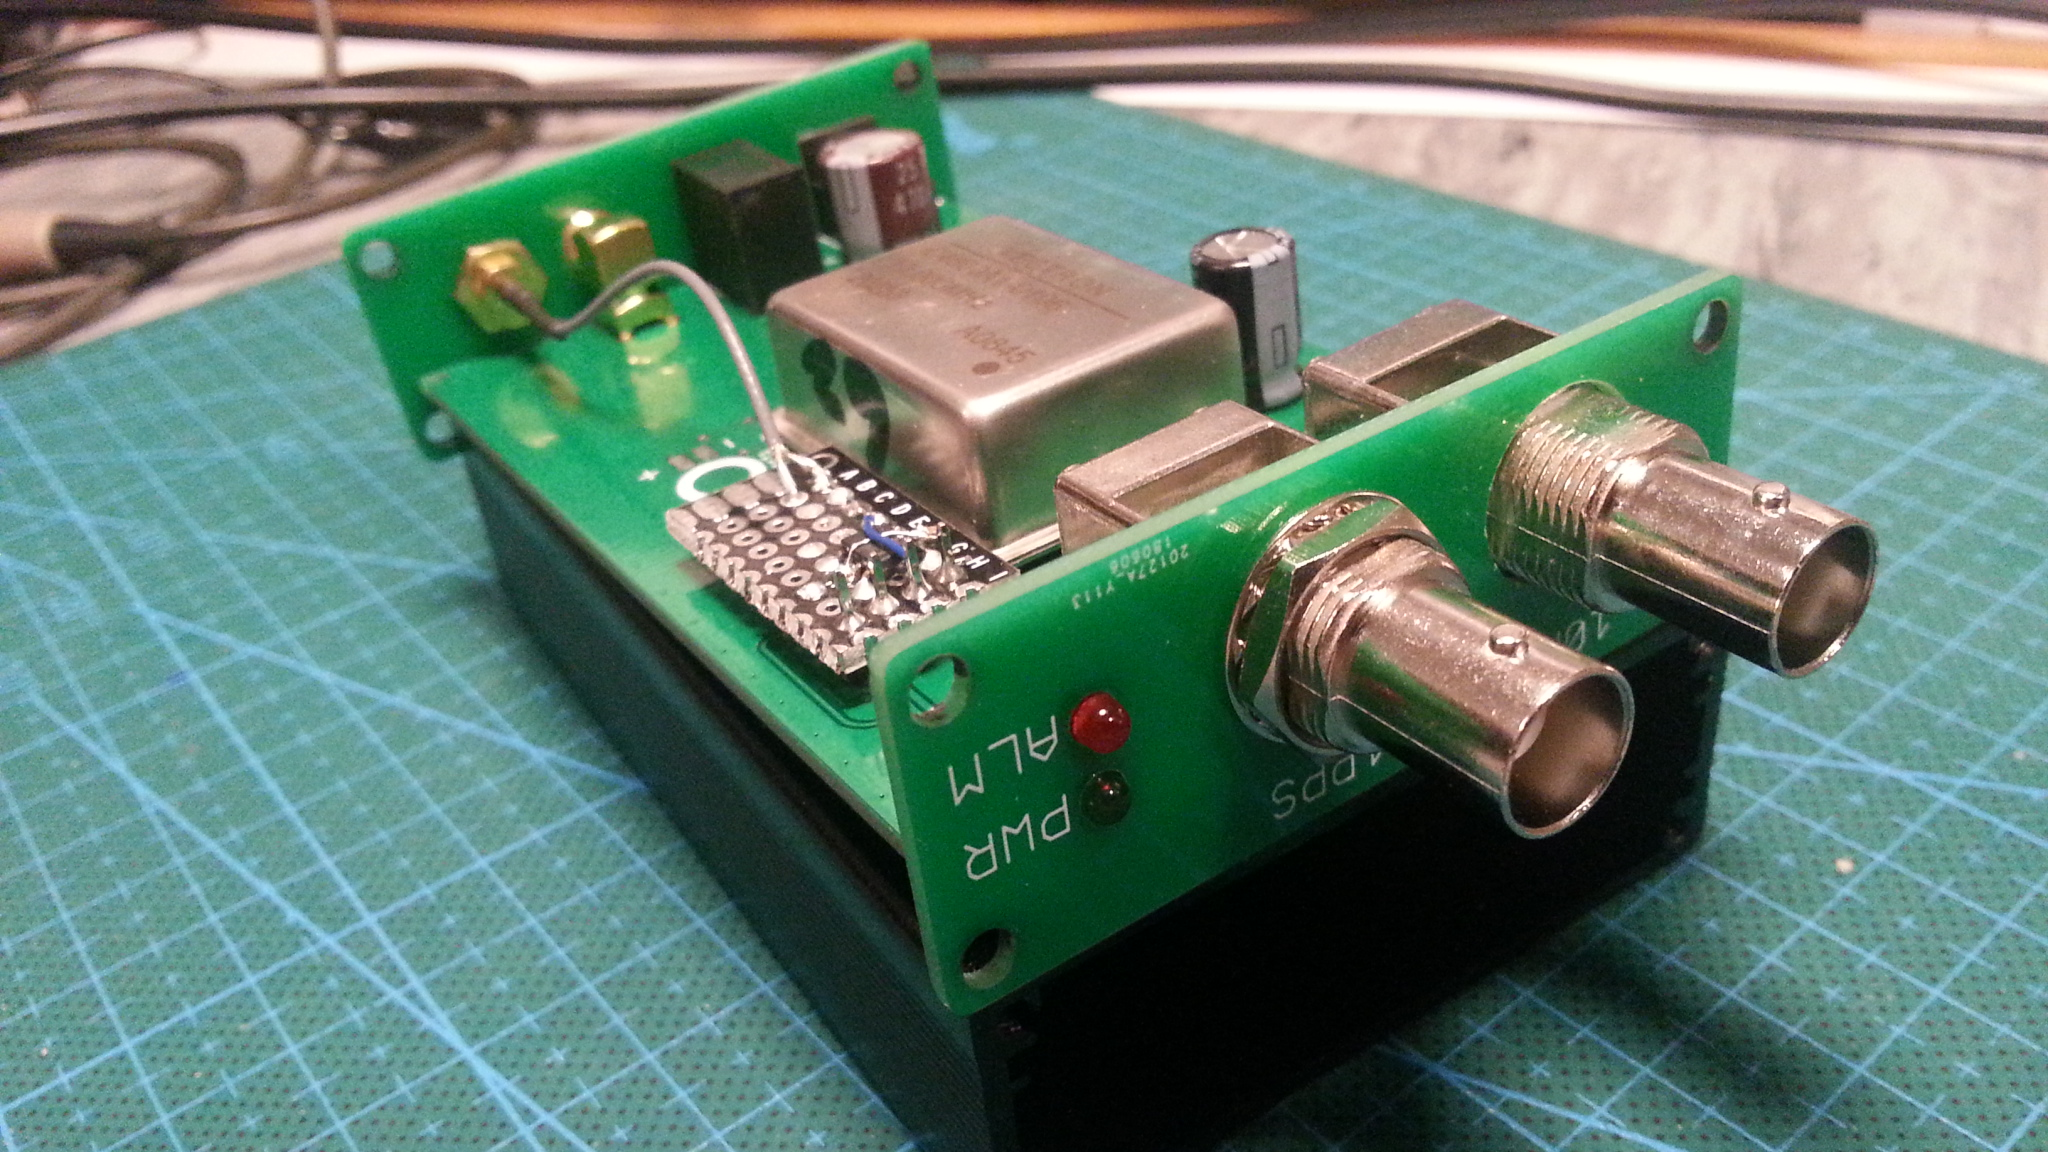 What GPS module with 10 MHz or 25 MHz out for stabilizing the LNB